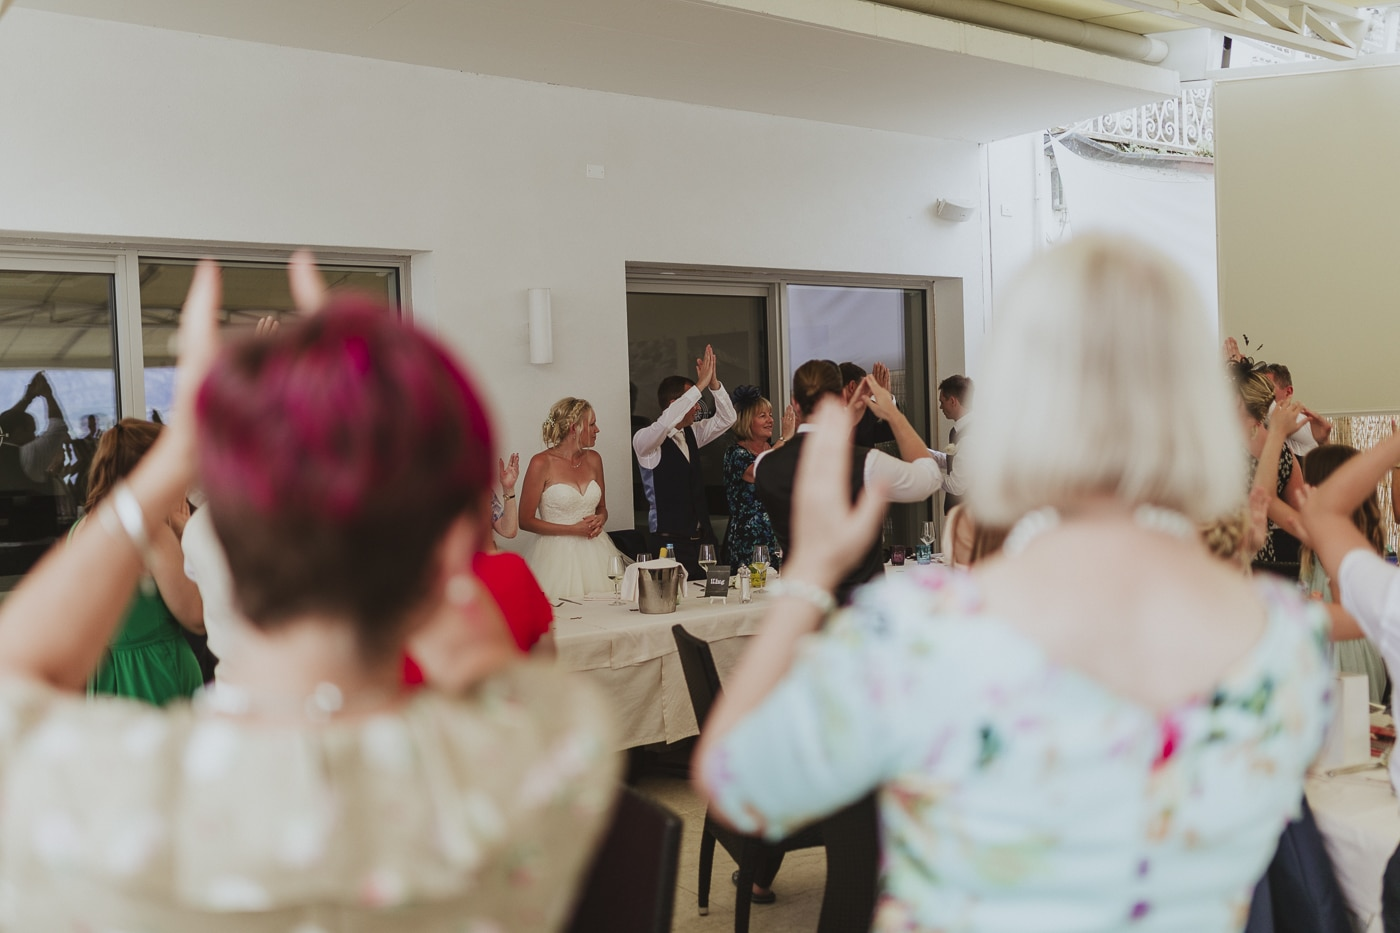 Guests and groom clapping whilst bride stands watching during wedding reception by Joshua Wyborn